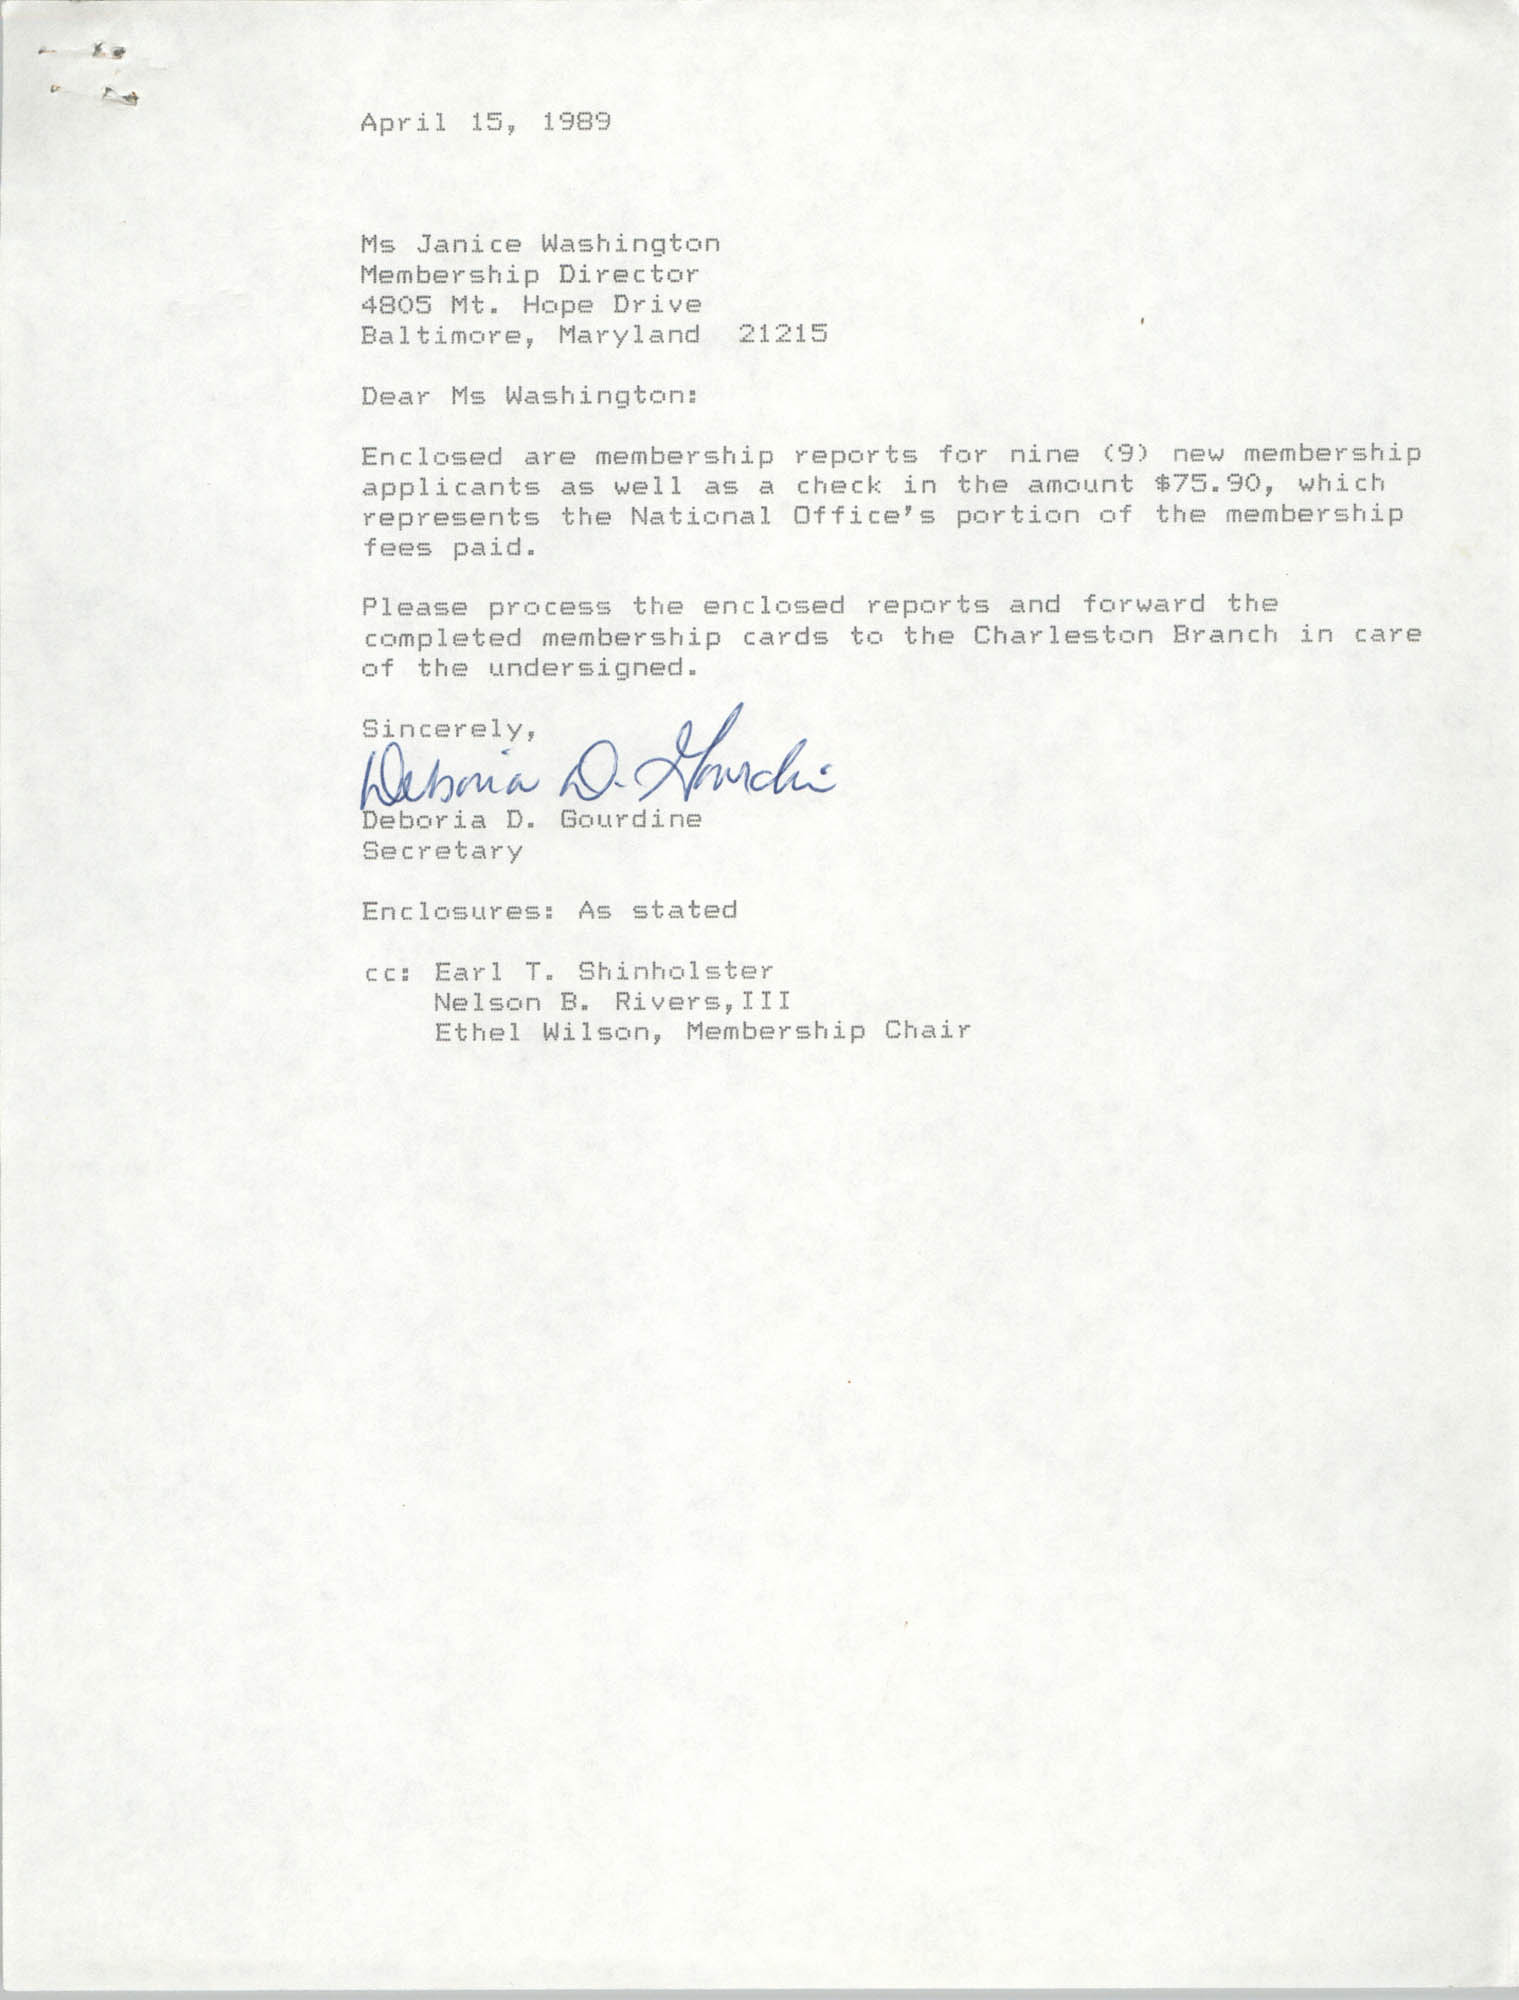 Letter from Deboria D. Gourdine to Janice Washington, NAACP, April 15, 1989